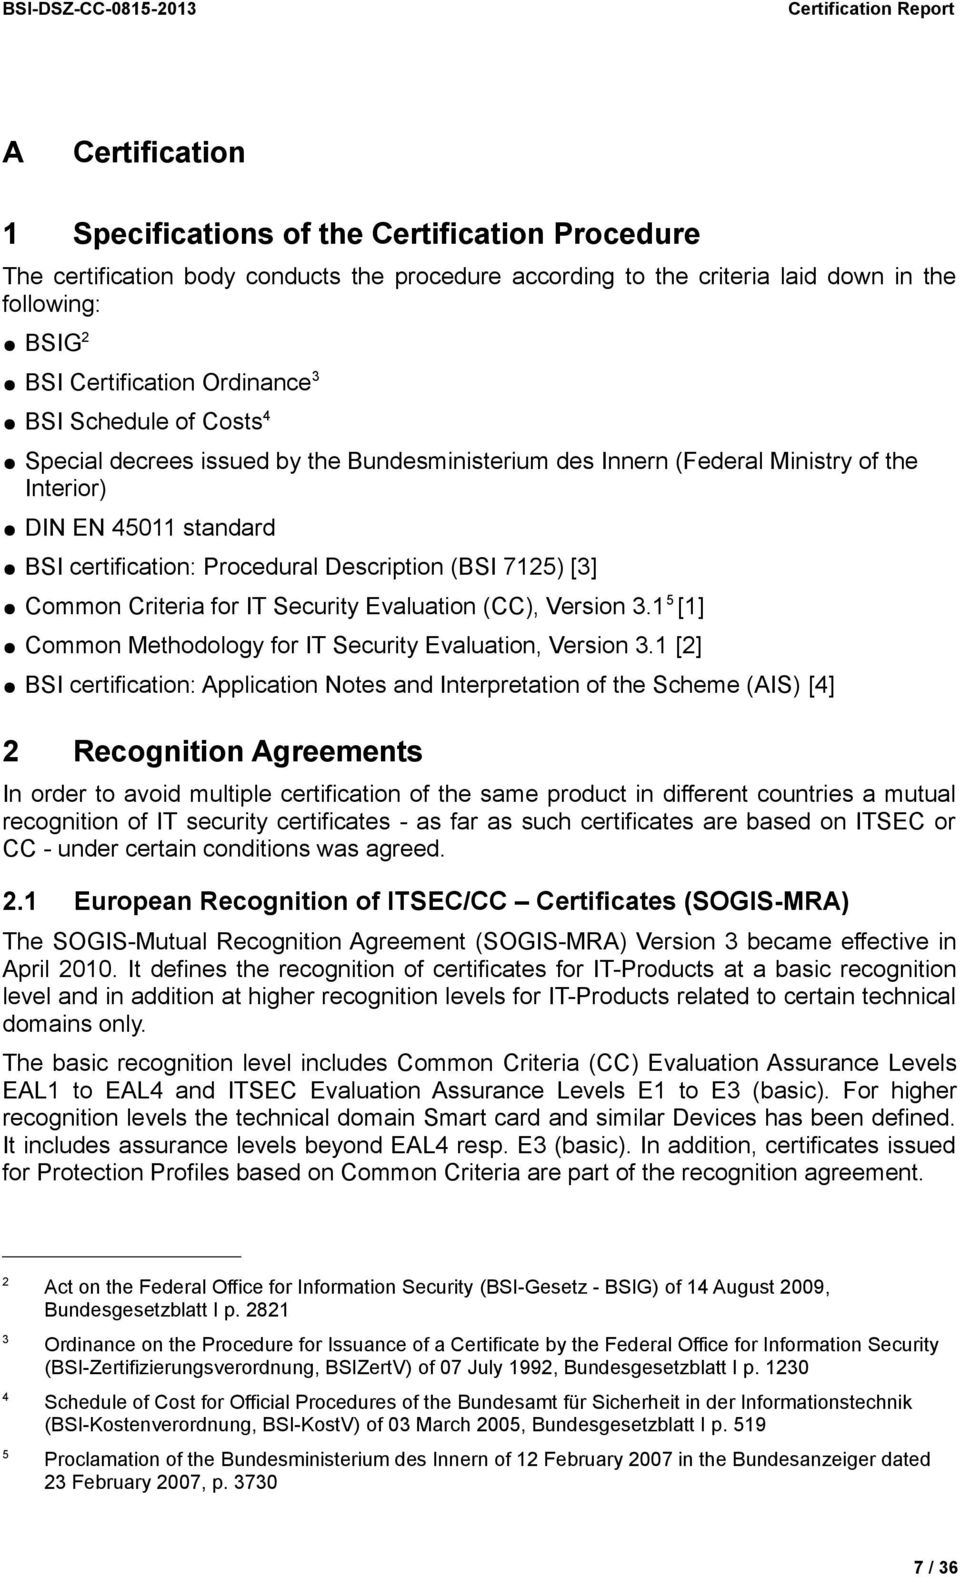 certification: Procedural Description (BSI 7125) [3] Common Criteria for IT Security Evaluation (CC), Version 3.1 5 [1] Common Methodology for IT Security Evaluation, Version 3.